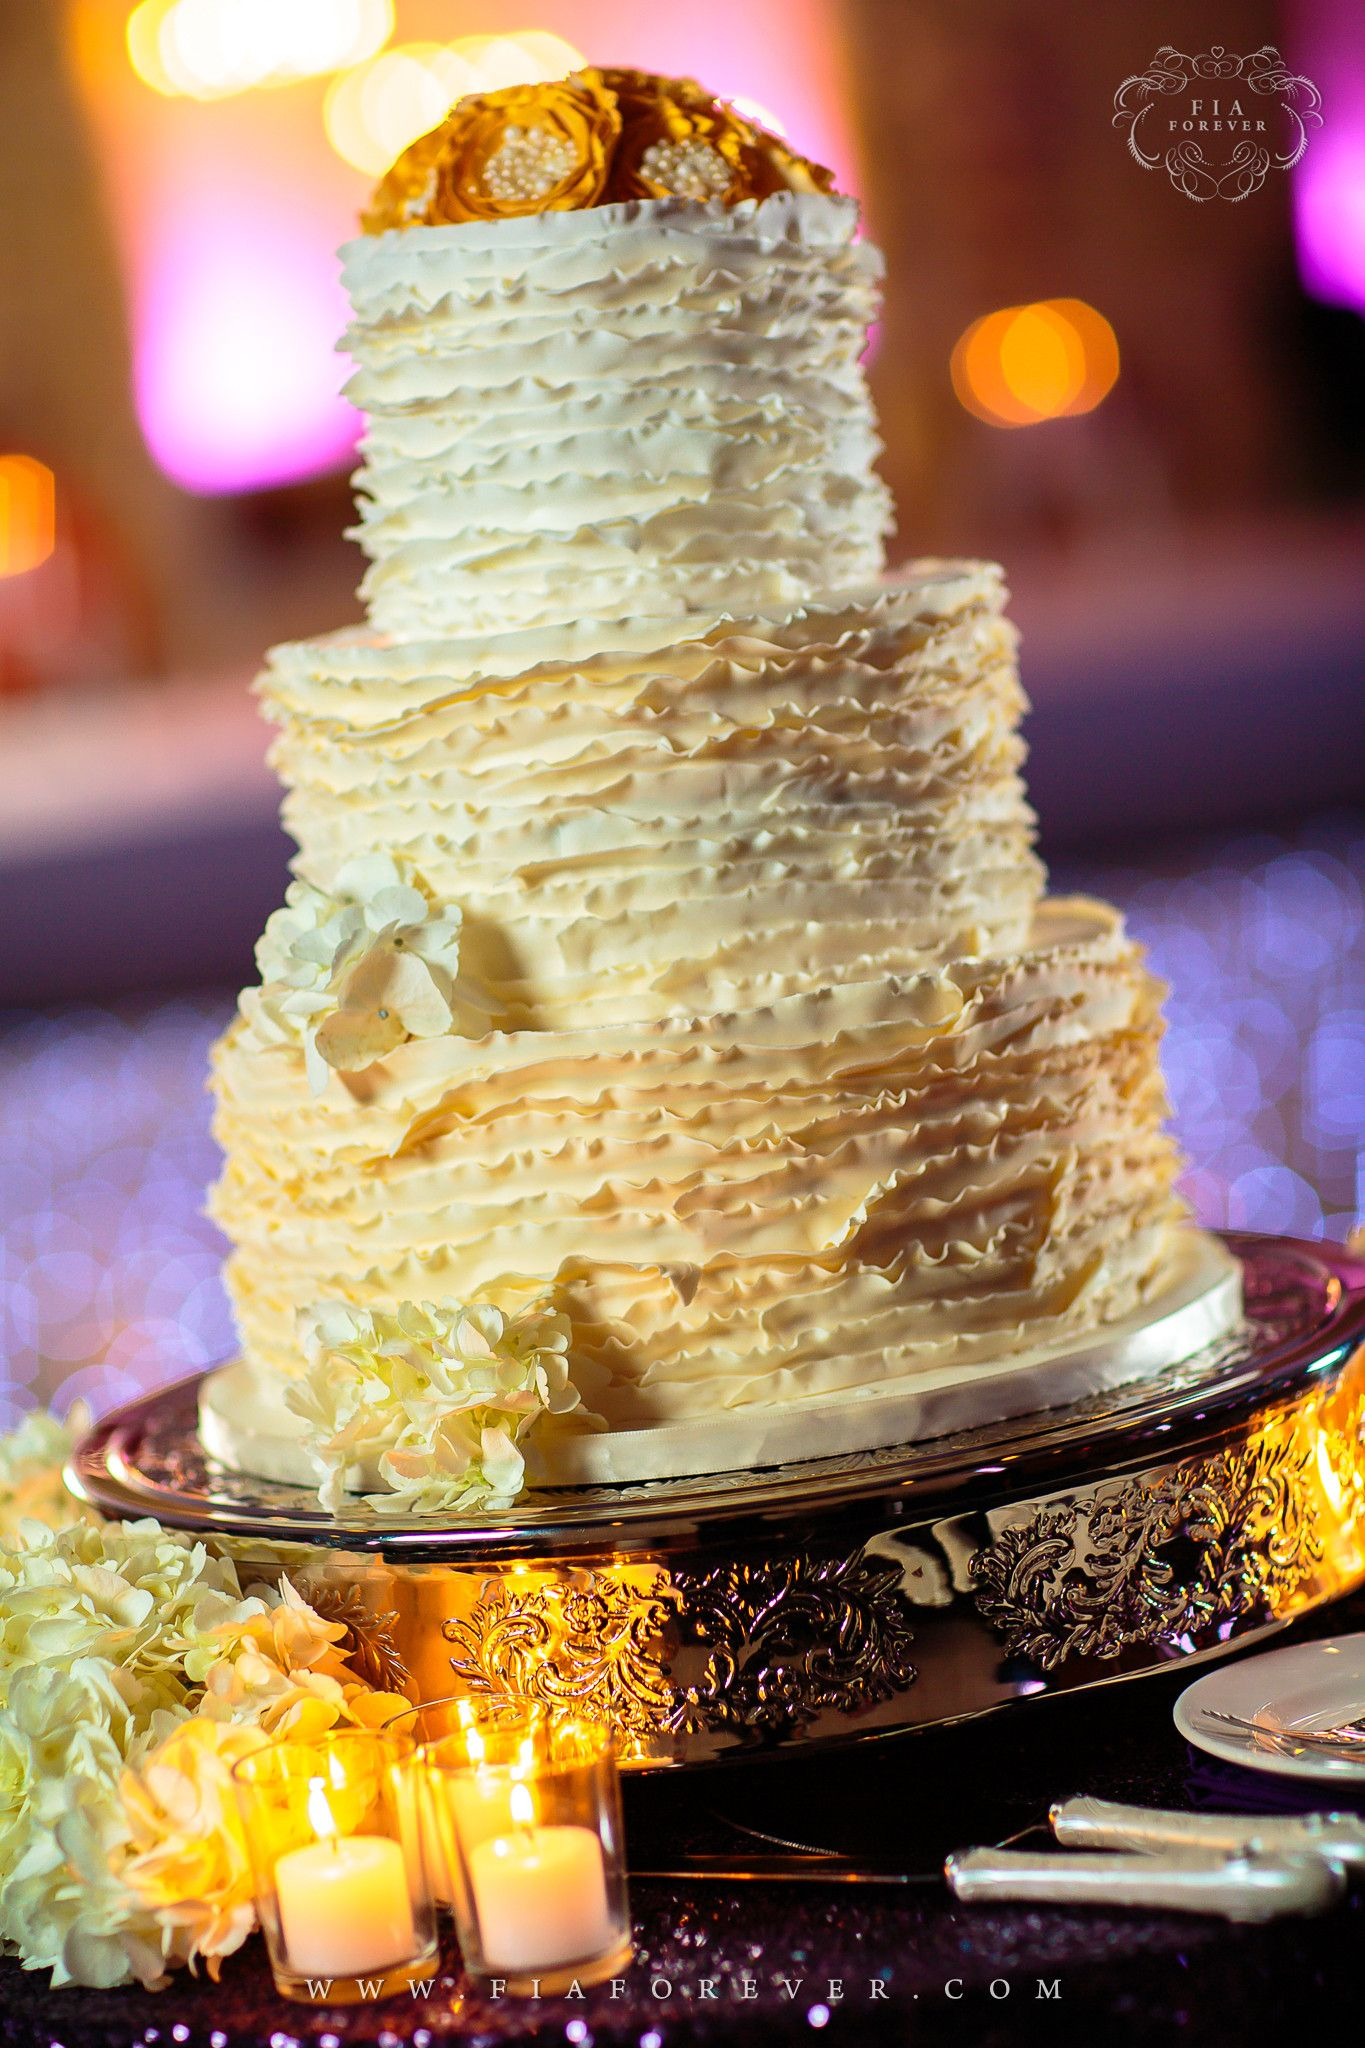 Wedding cake ideas, indian wedding decor ideas, greenville sc ...